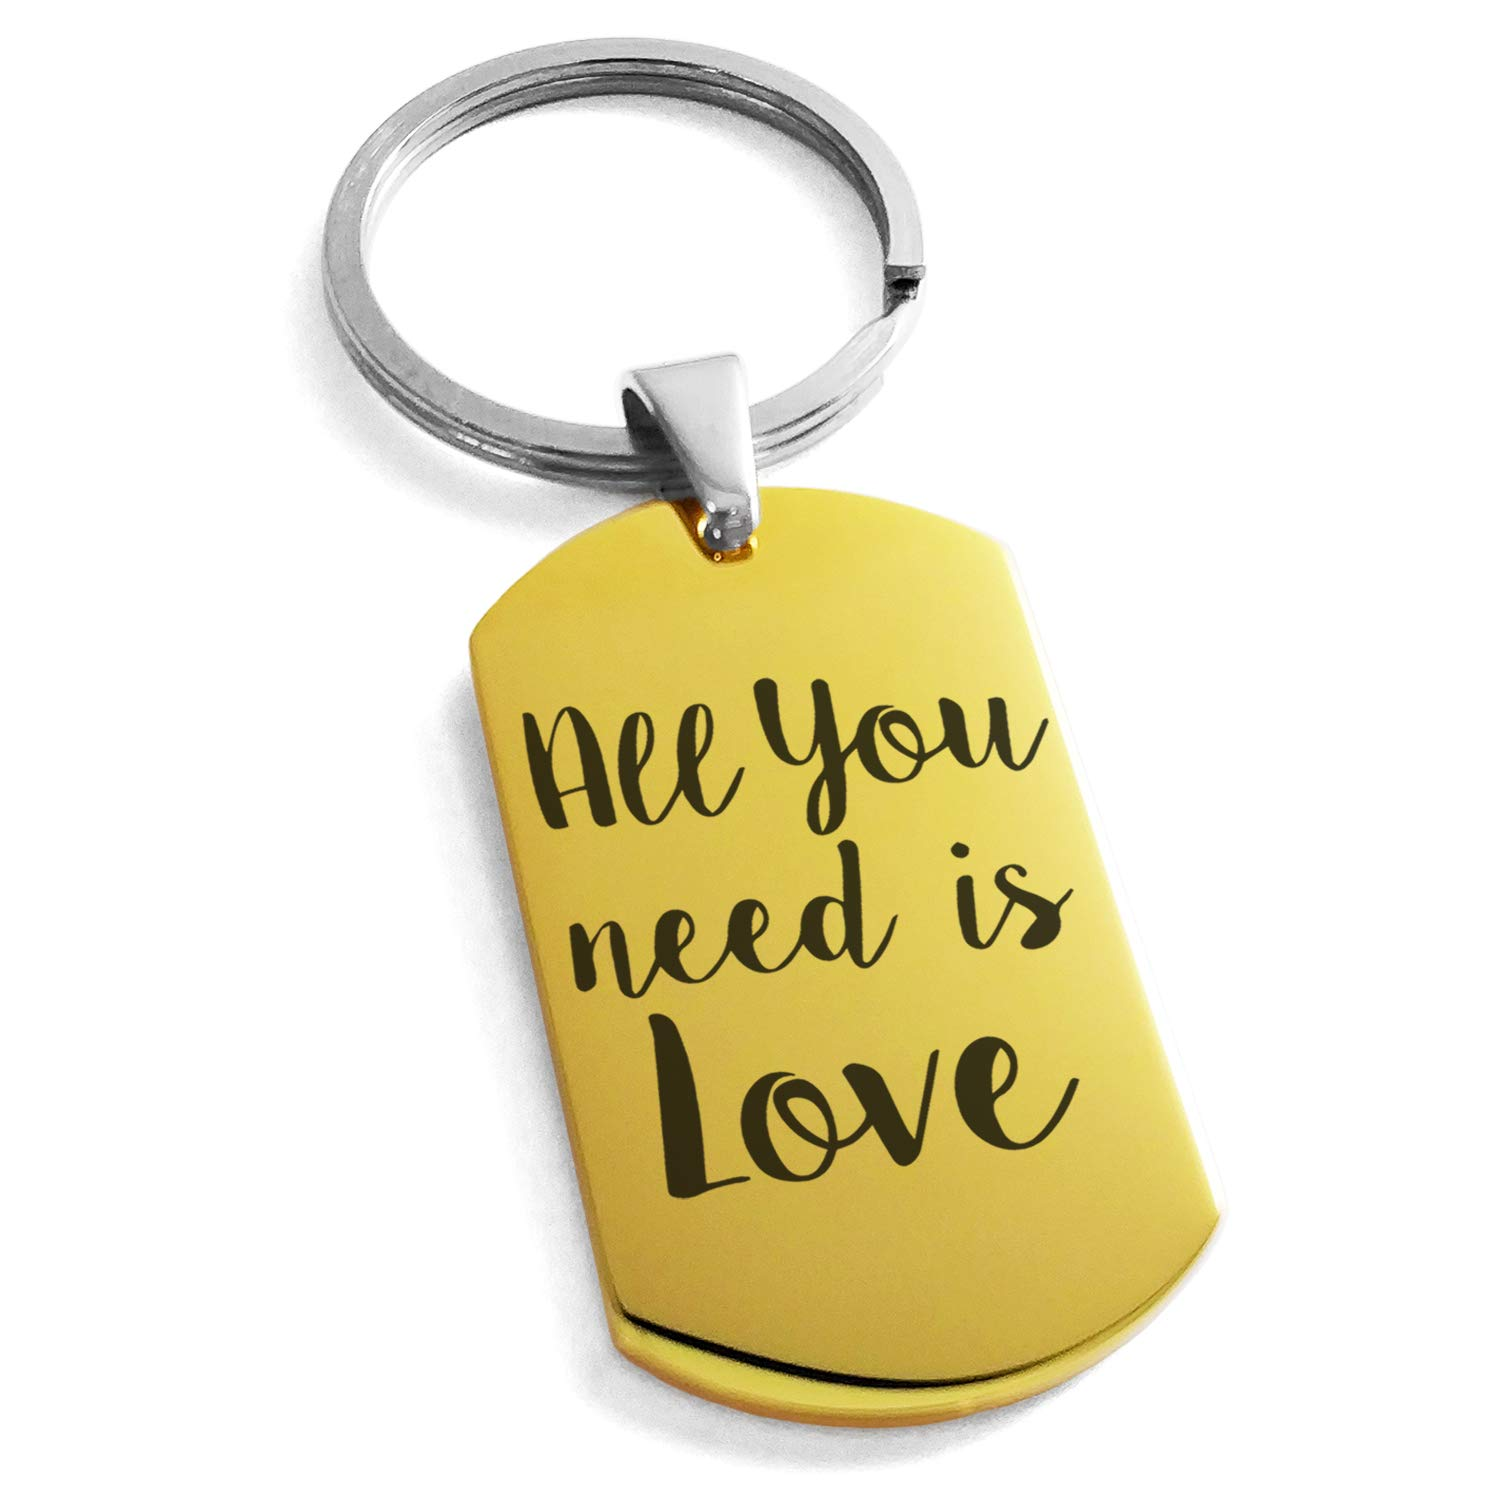 Tioneer Gold Plated Stainless Steel All You Need is Love Engraved Dog Tag Keychain Keyring